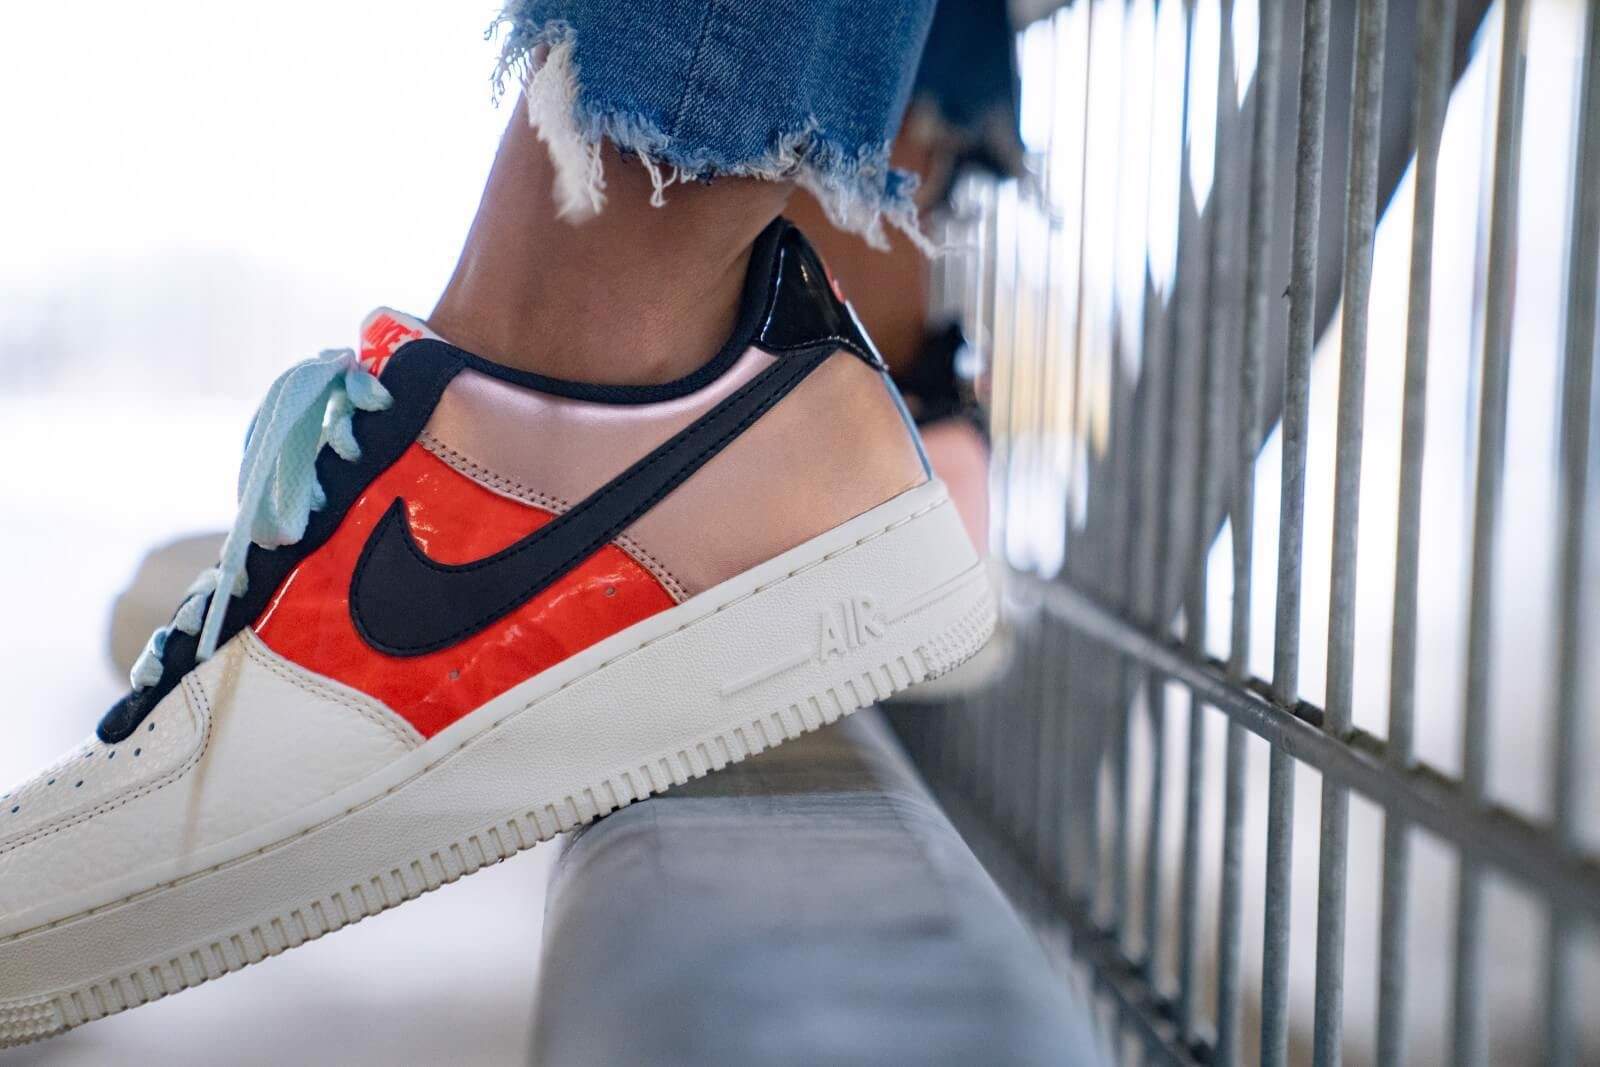 Nike Air Force 1 Low 'Mettallic Red Bronze' CT3429-900